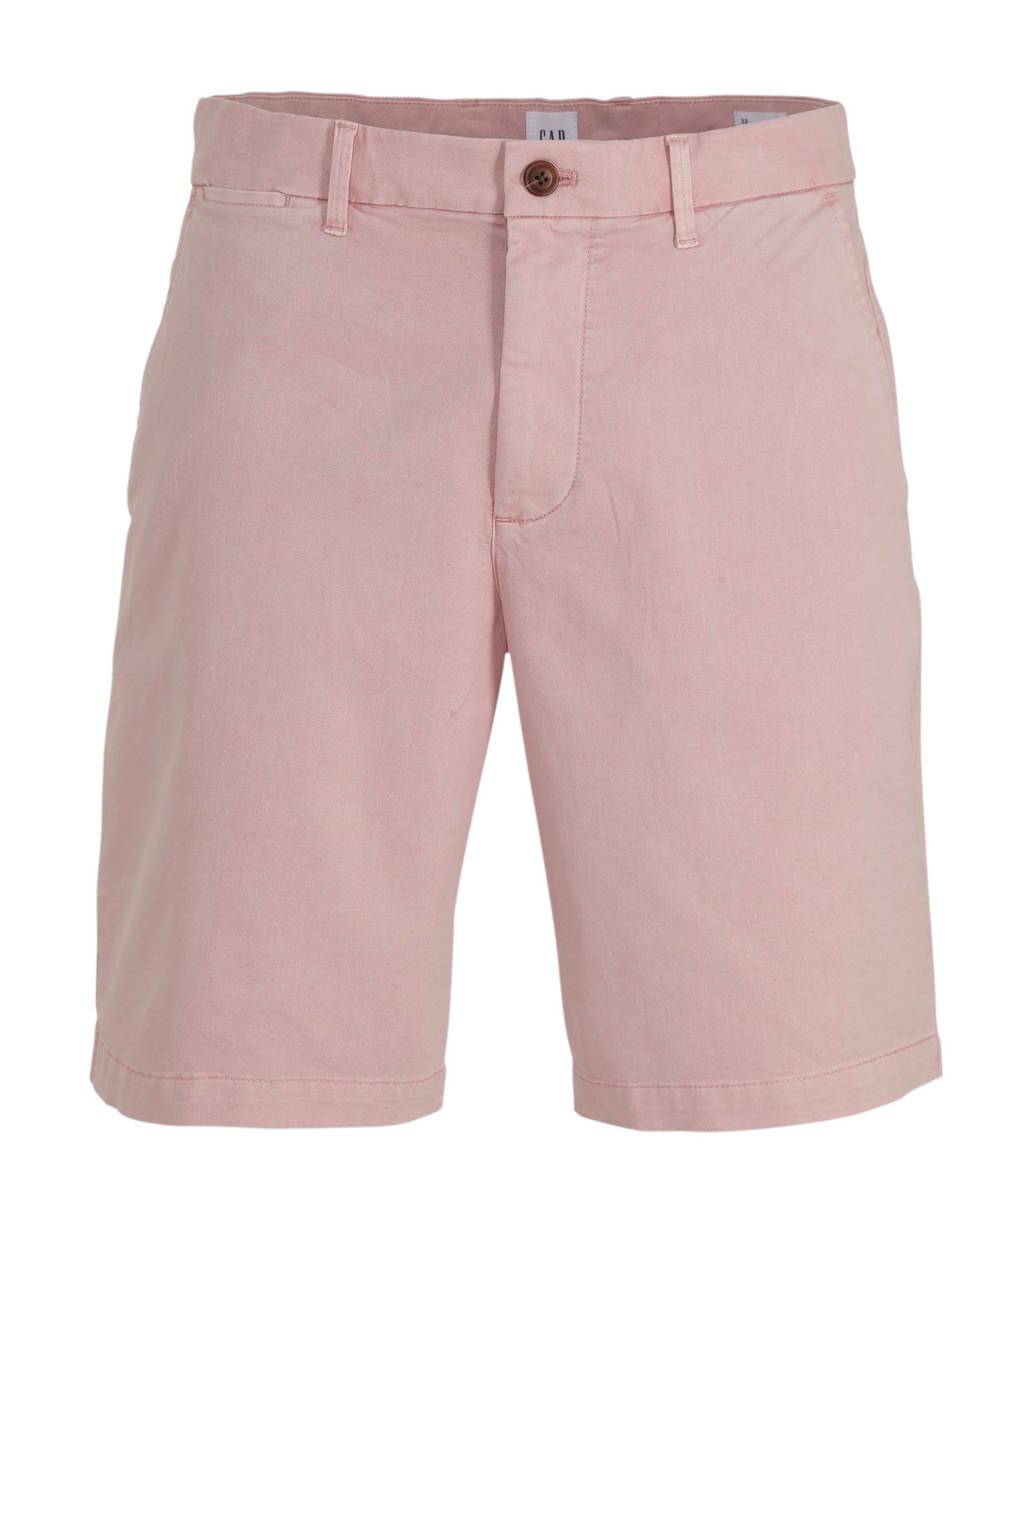 GAP regular fit bermuda roze, Roze